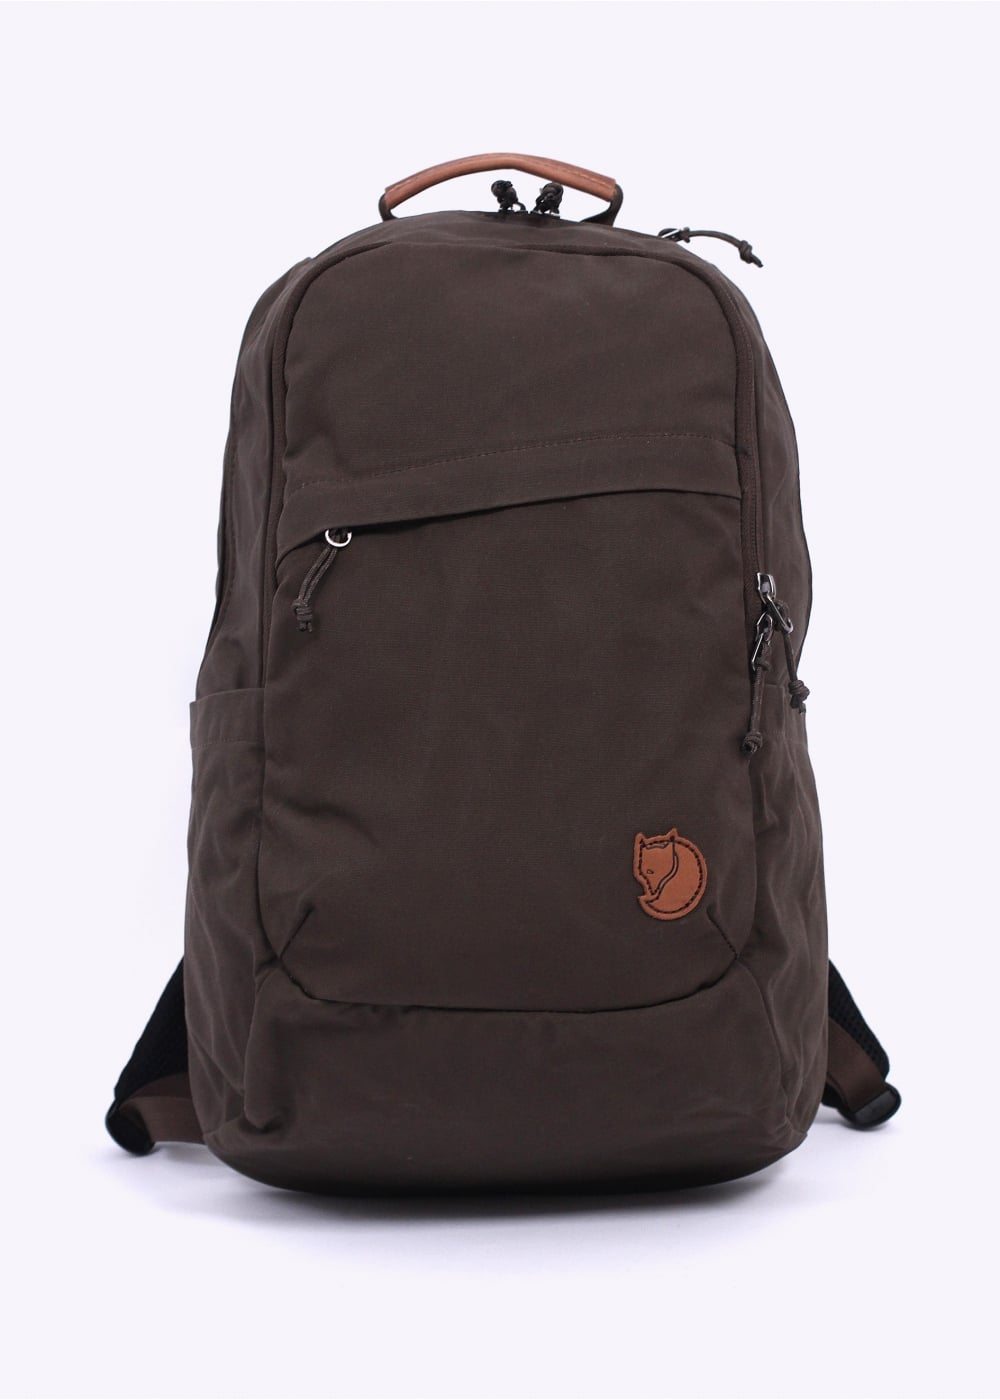 4791c9677ad4b Fjallraven Raven 20 BackPack - Dark Olive